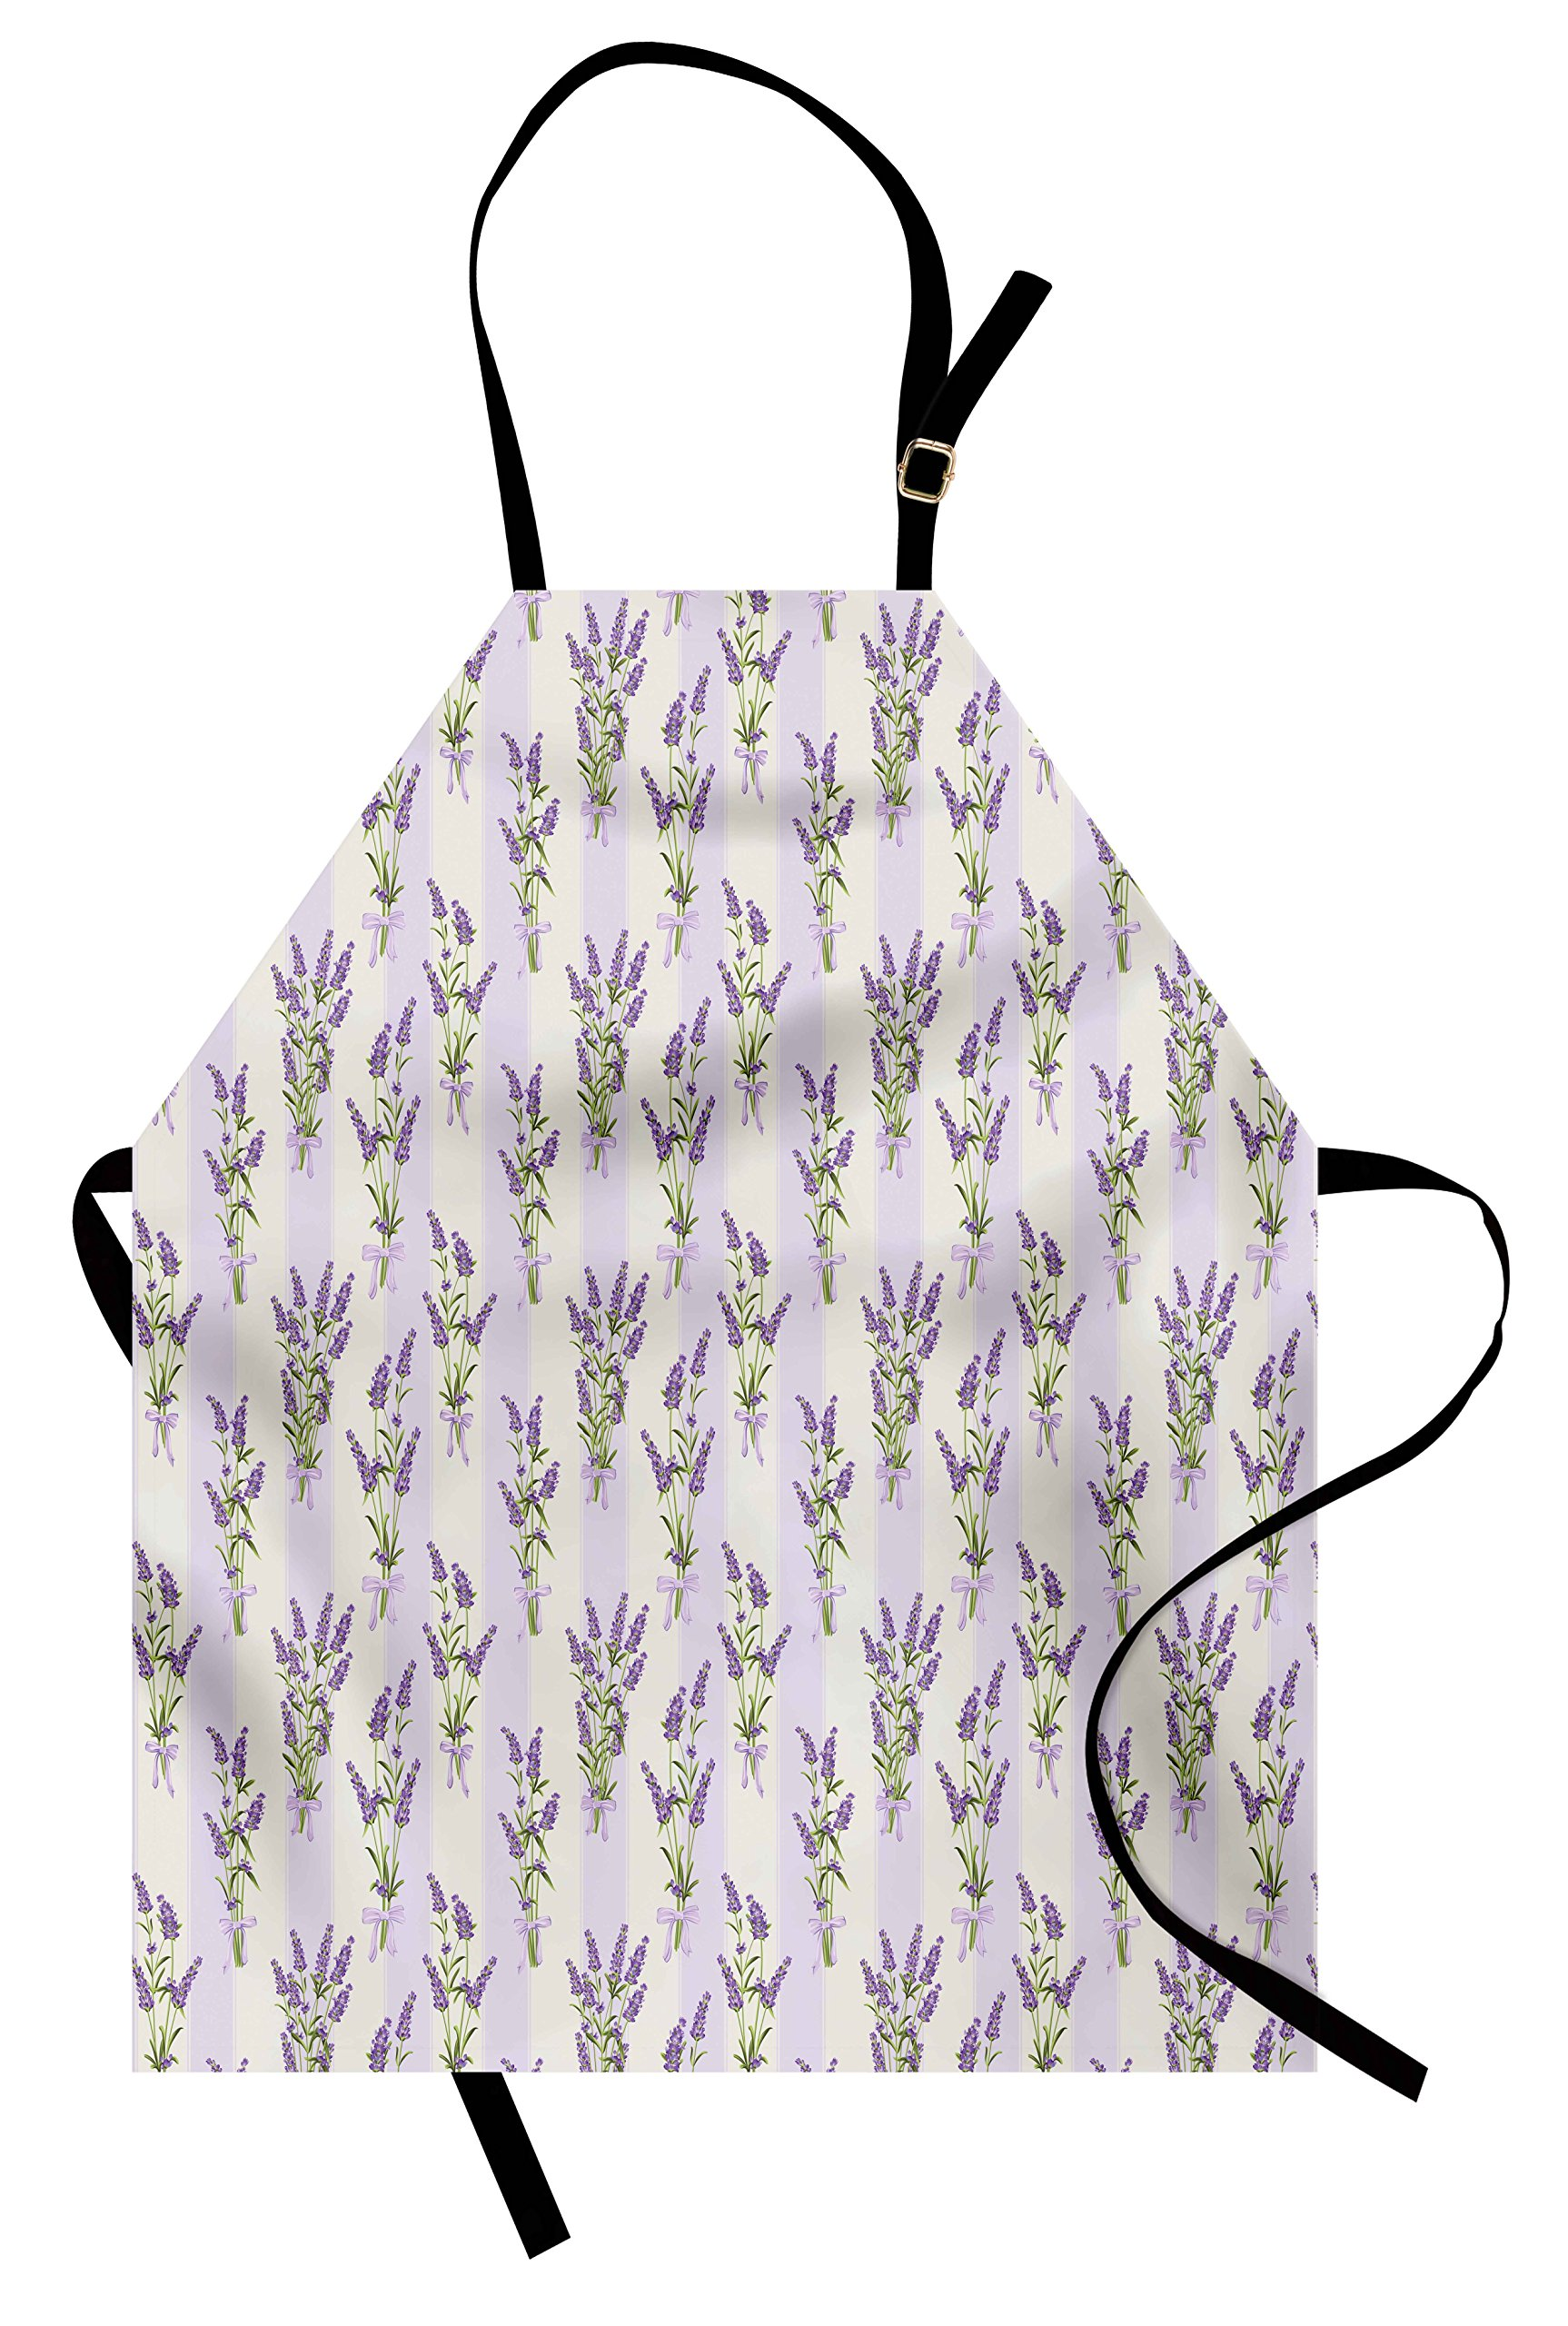 Ambesonne Lavender Apron, Stripes and Flowers with Ribbons Romantic Country Spring Season Inspired Design Art, Unisex Kitchen Bib Apron with Adjustable Neck for Cooking Baking Gardening, Purple